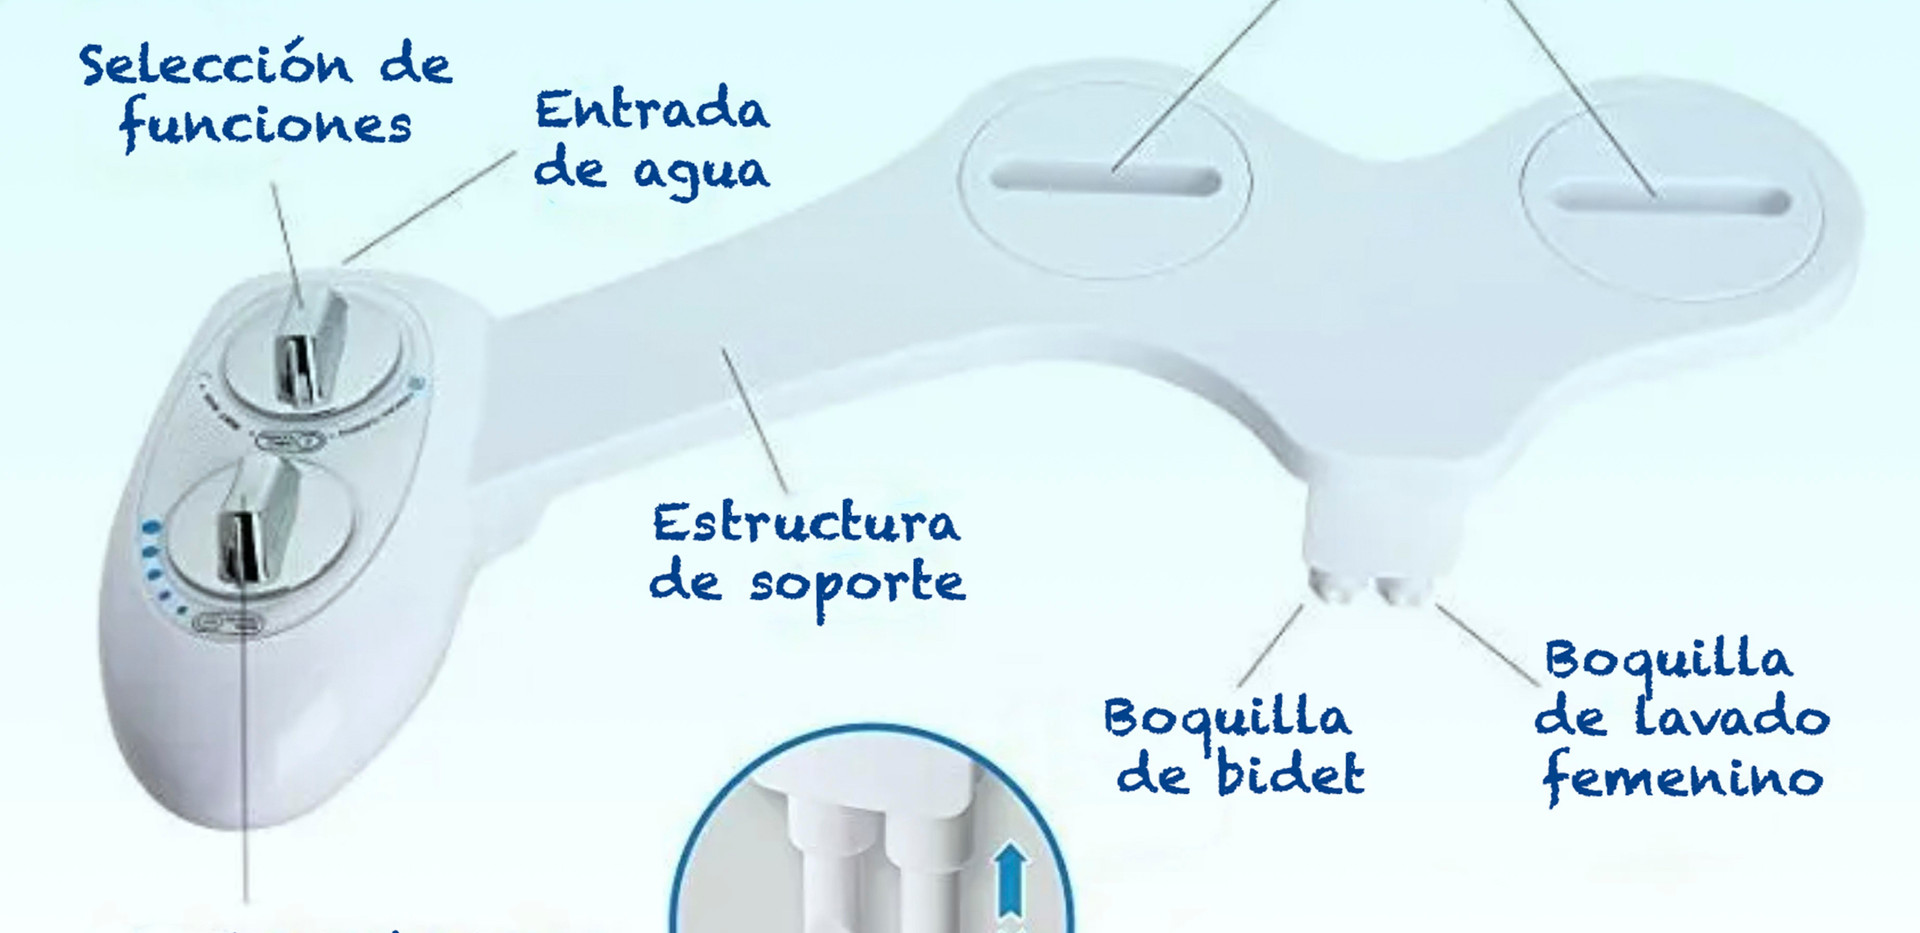 Bidet - Descripcion